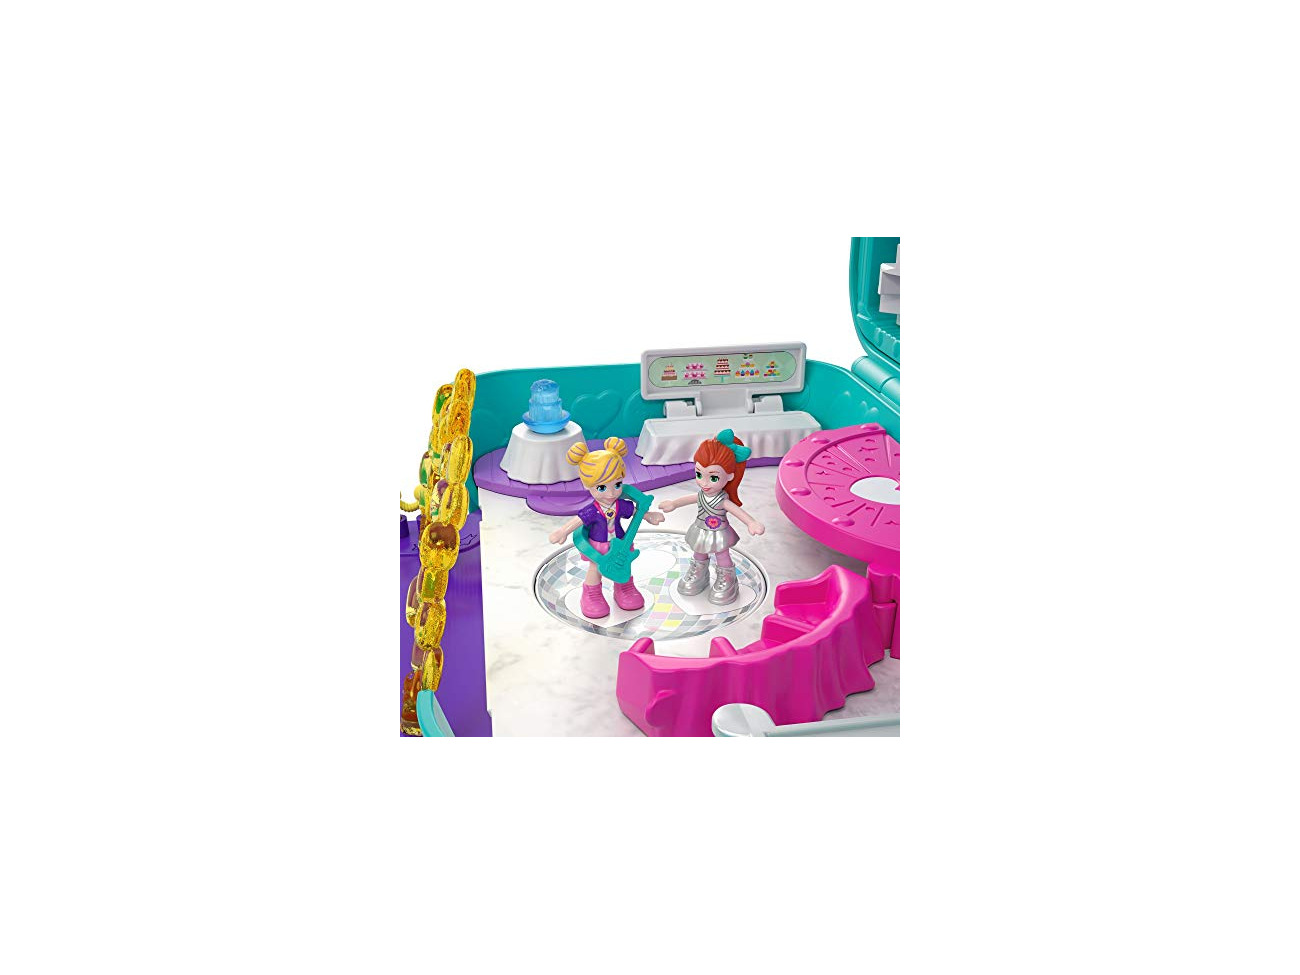 "Polly Pocket FRY41/"" Hidden Places Dance par-taay Case Playset"